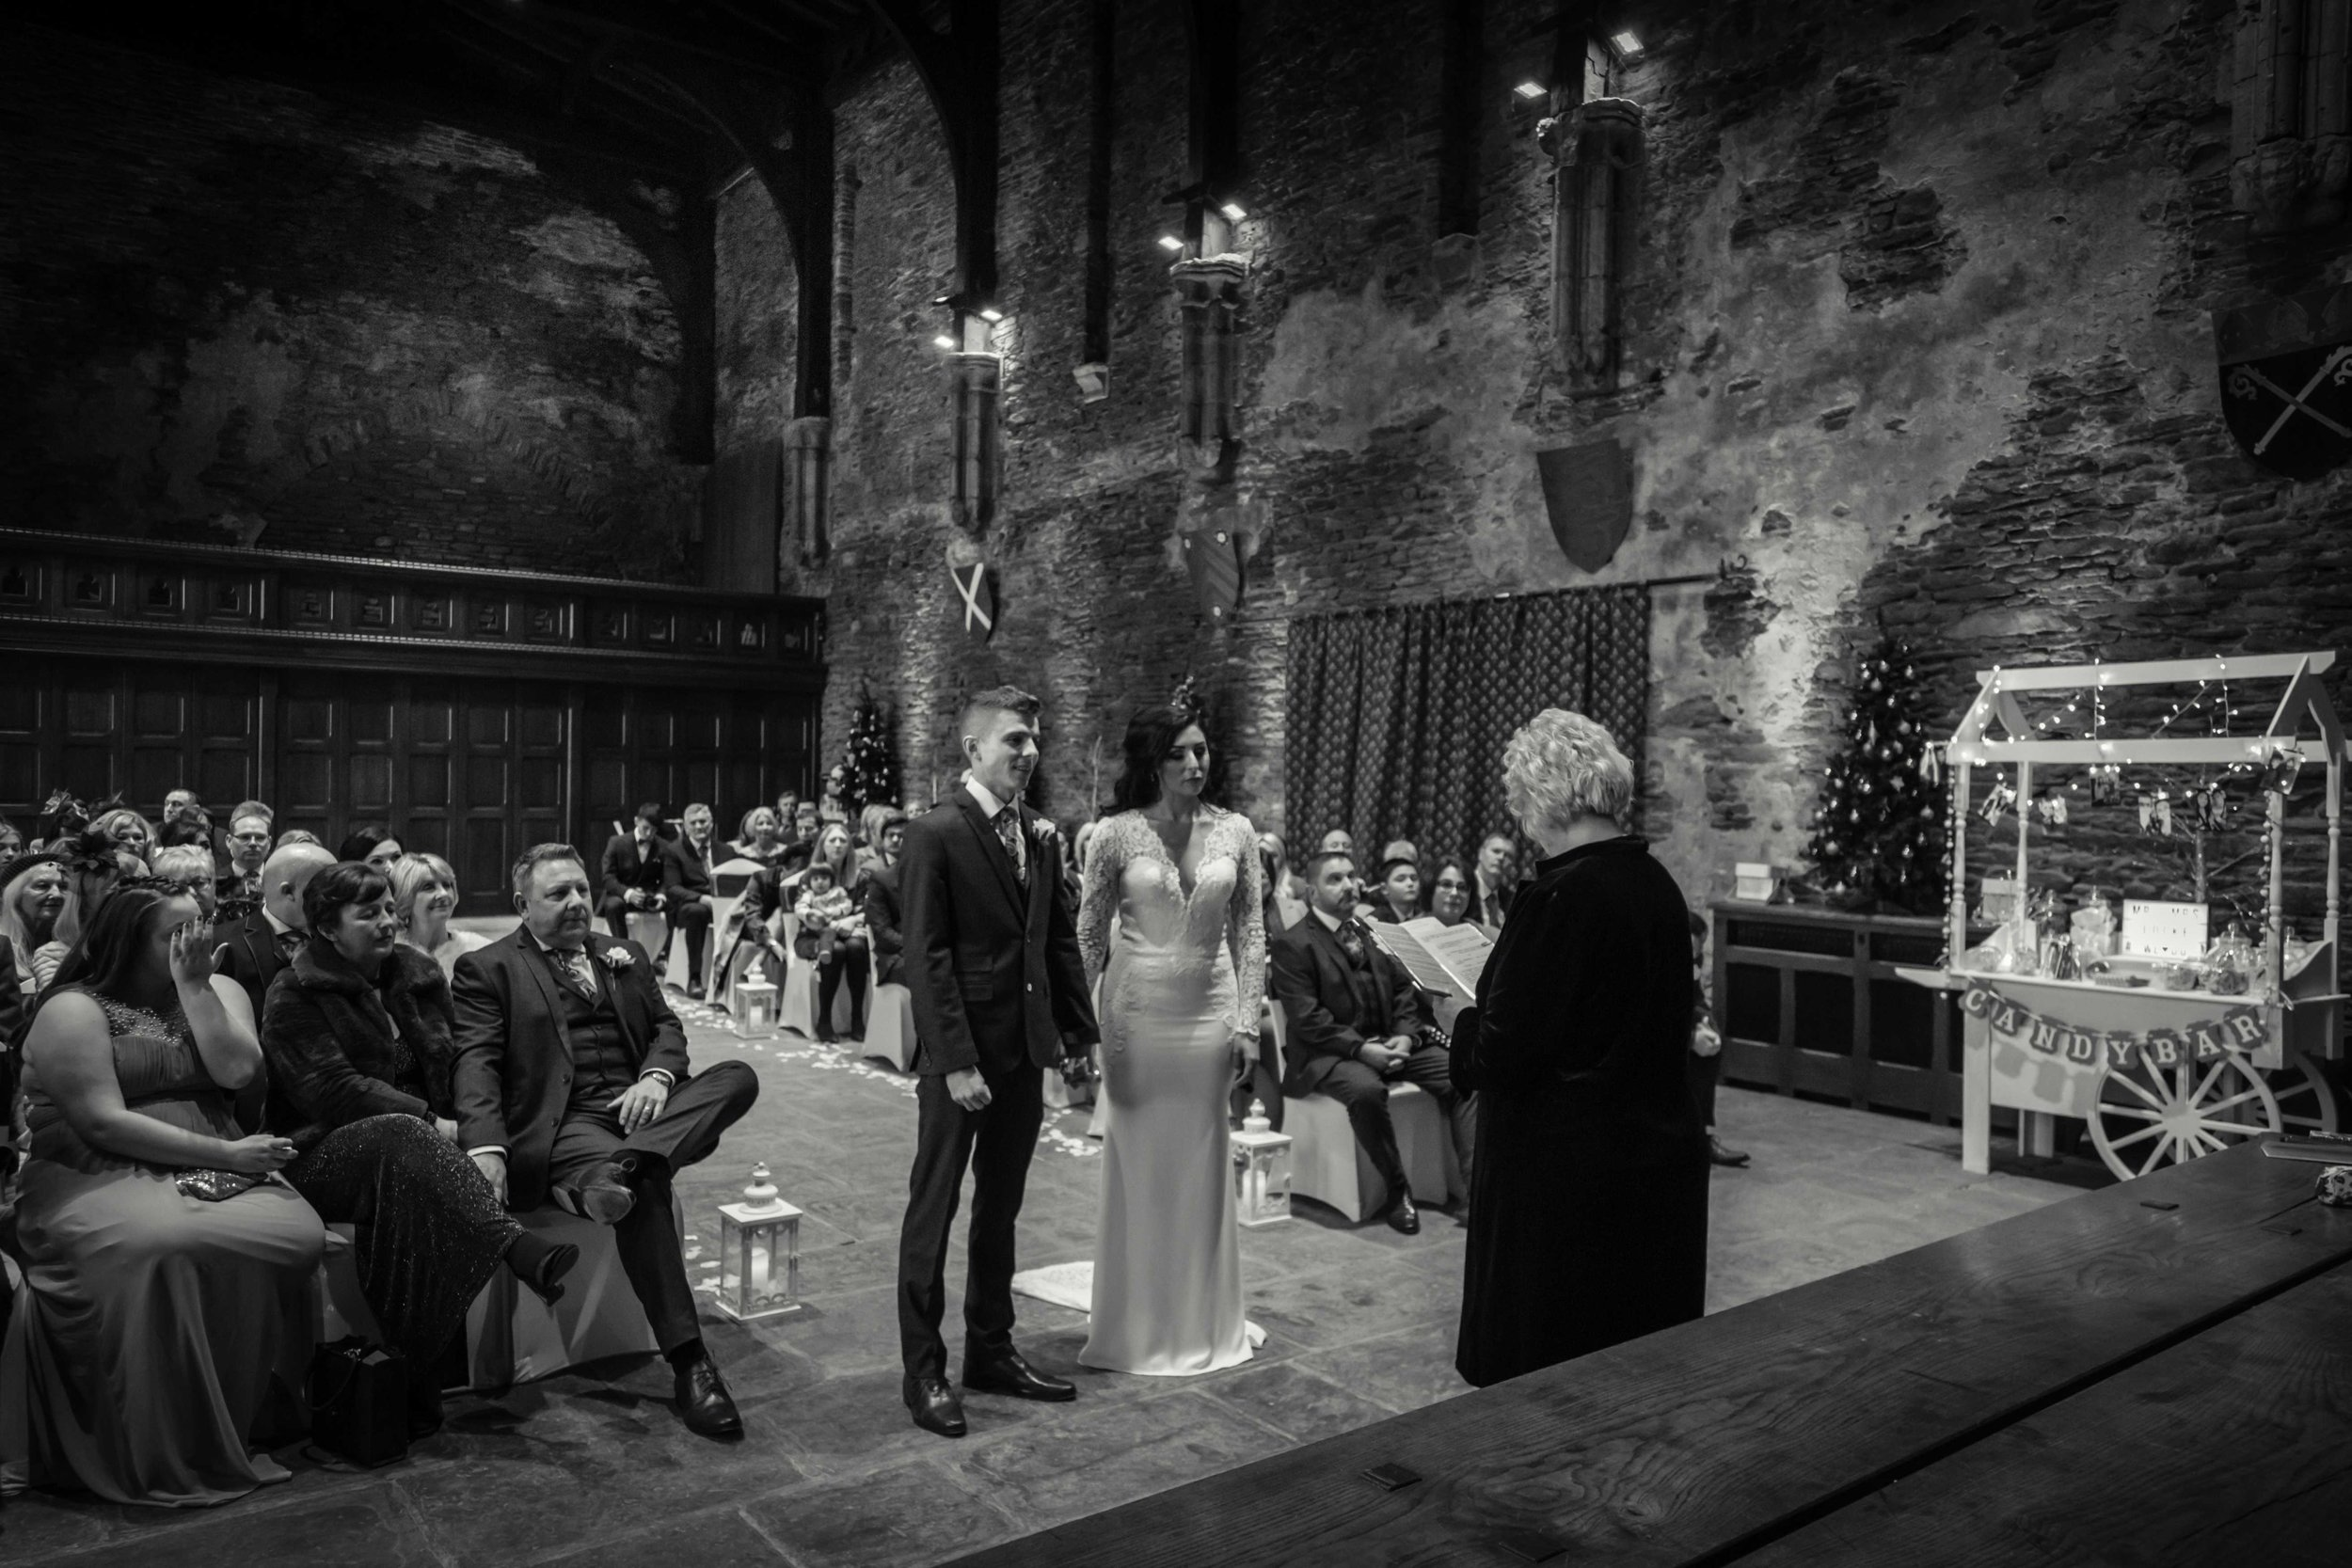 Black and white photograph of bride and groom at Caerphilly Castle wedding ceremony